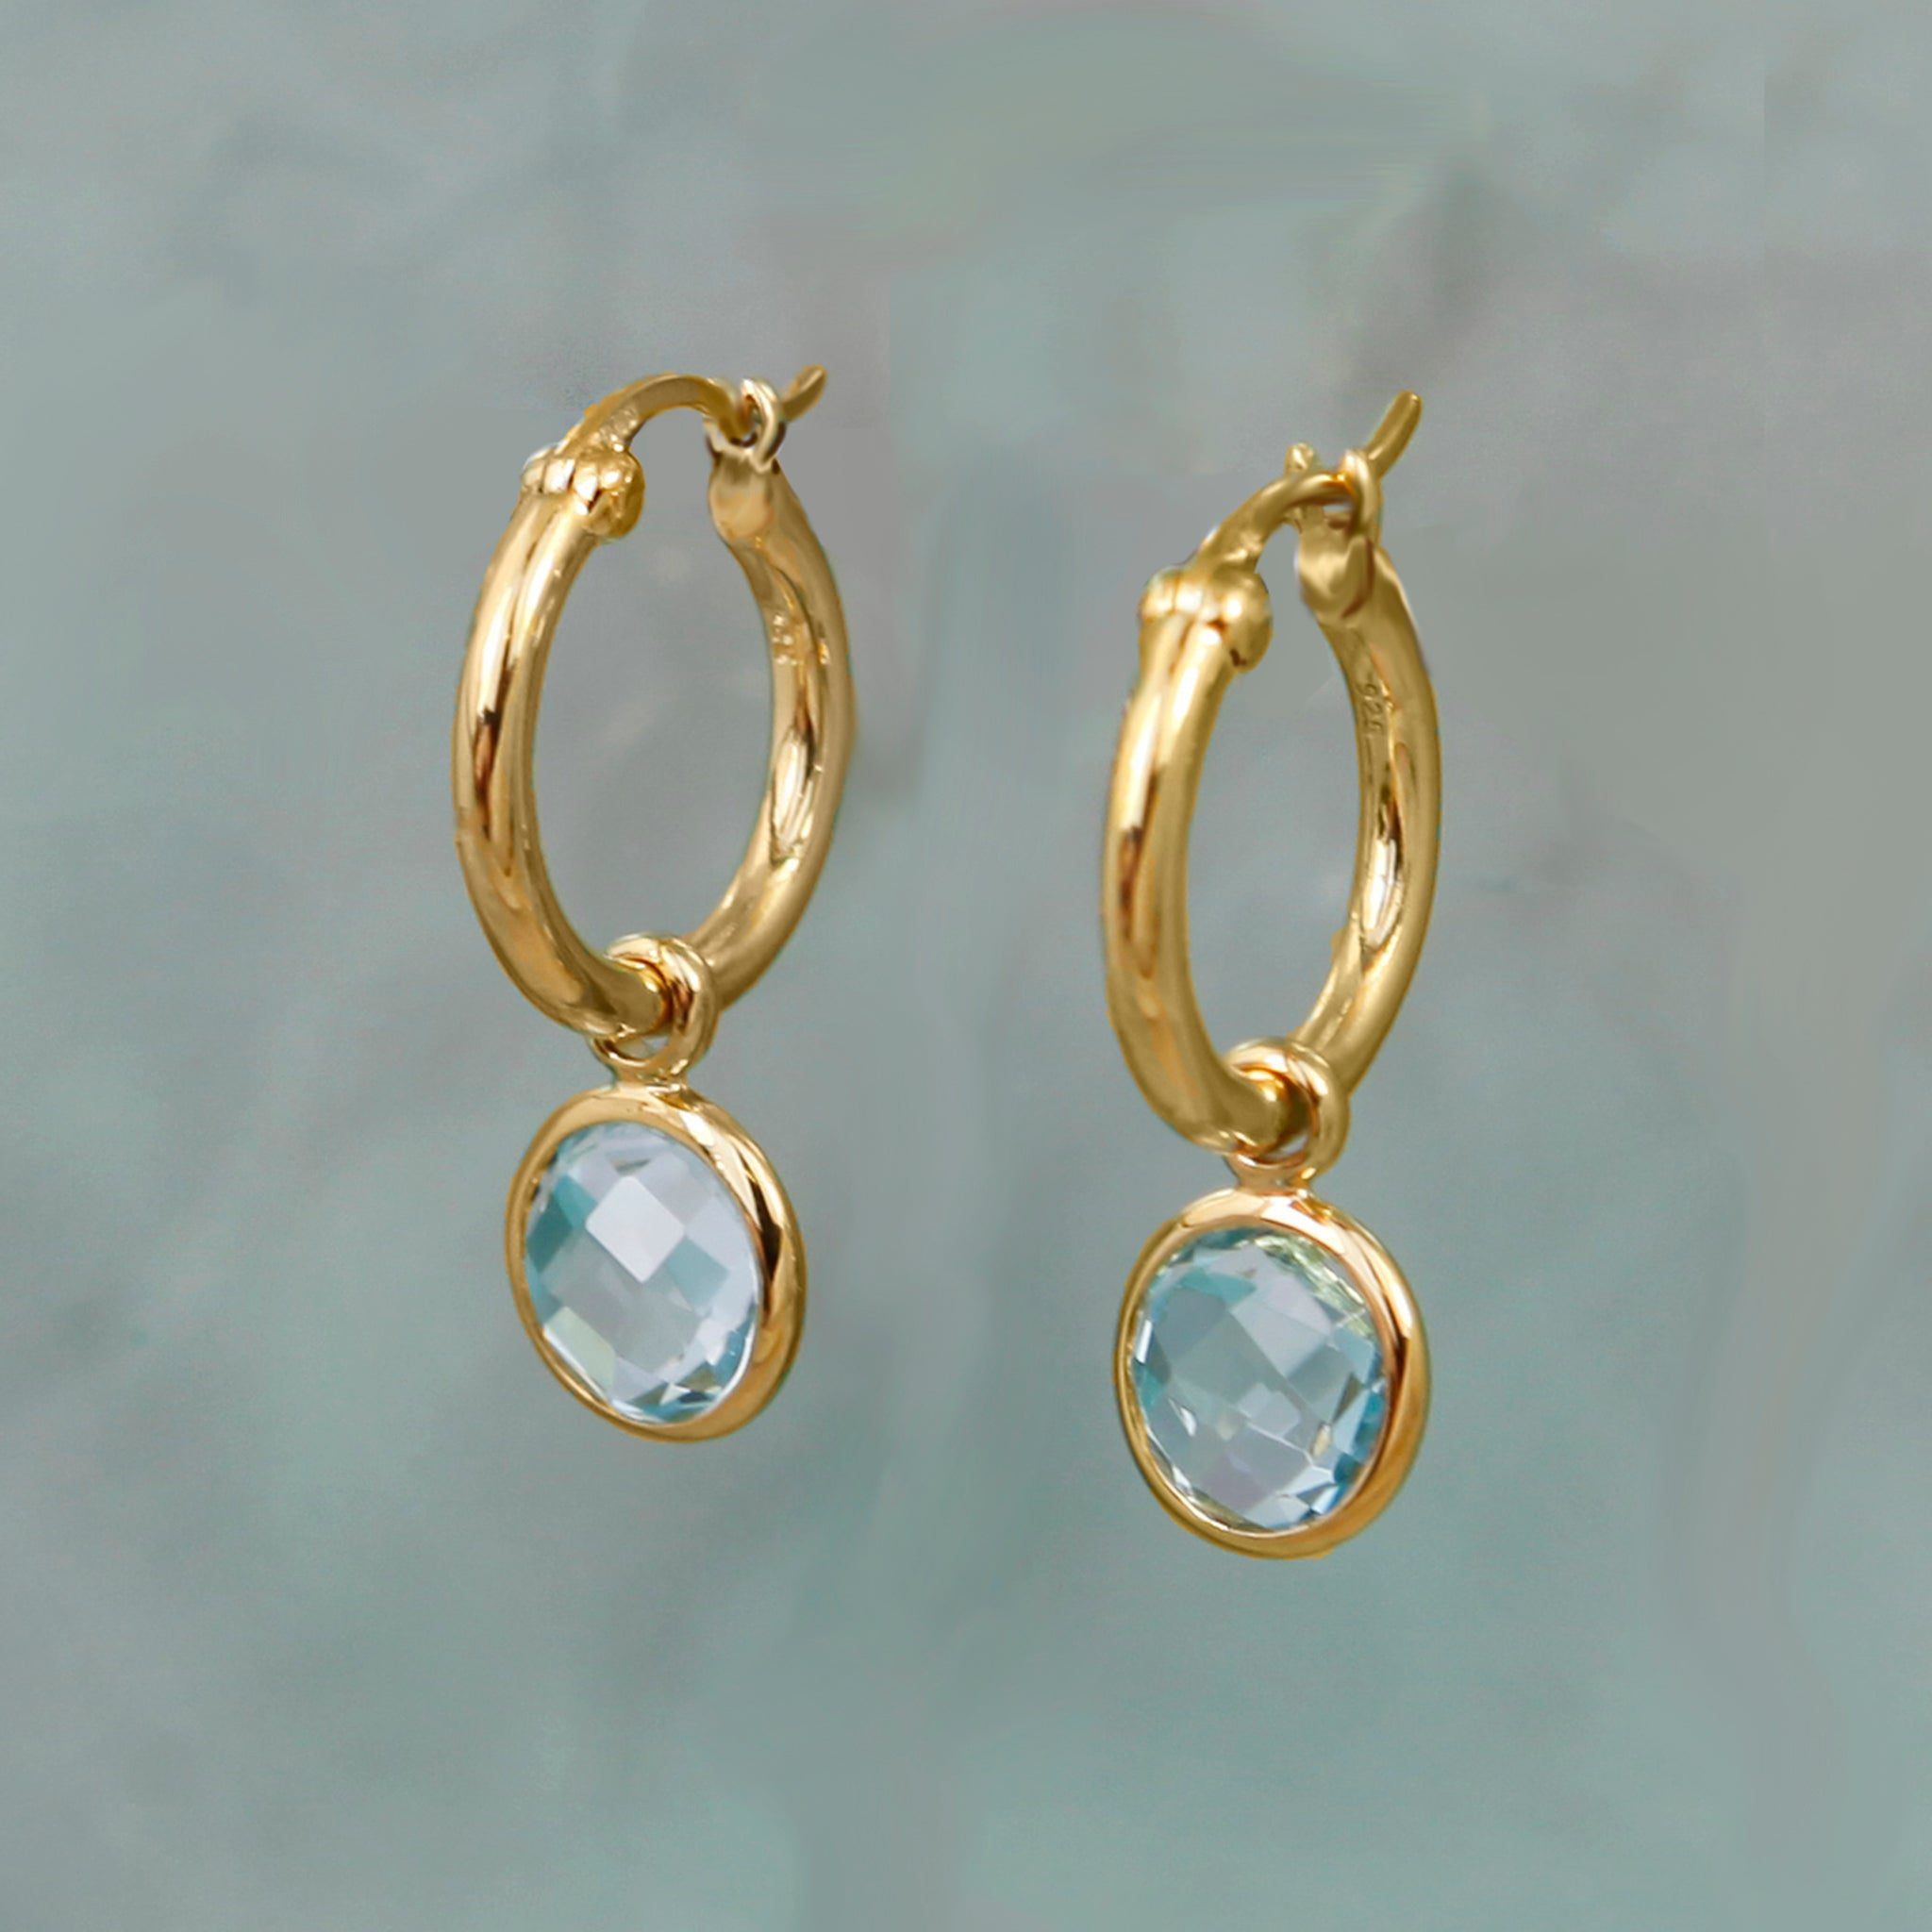 Staged Shot of Gold and Blue Topaz Huggie Hoop Earrings